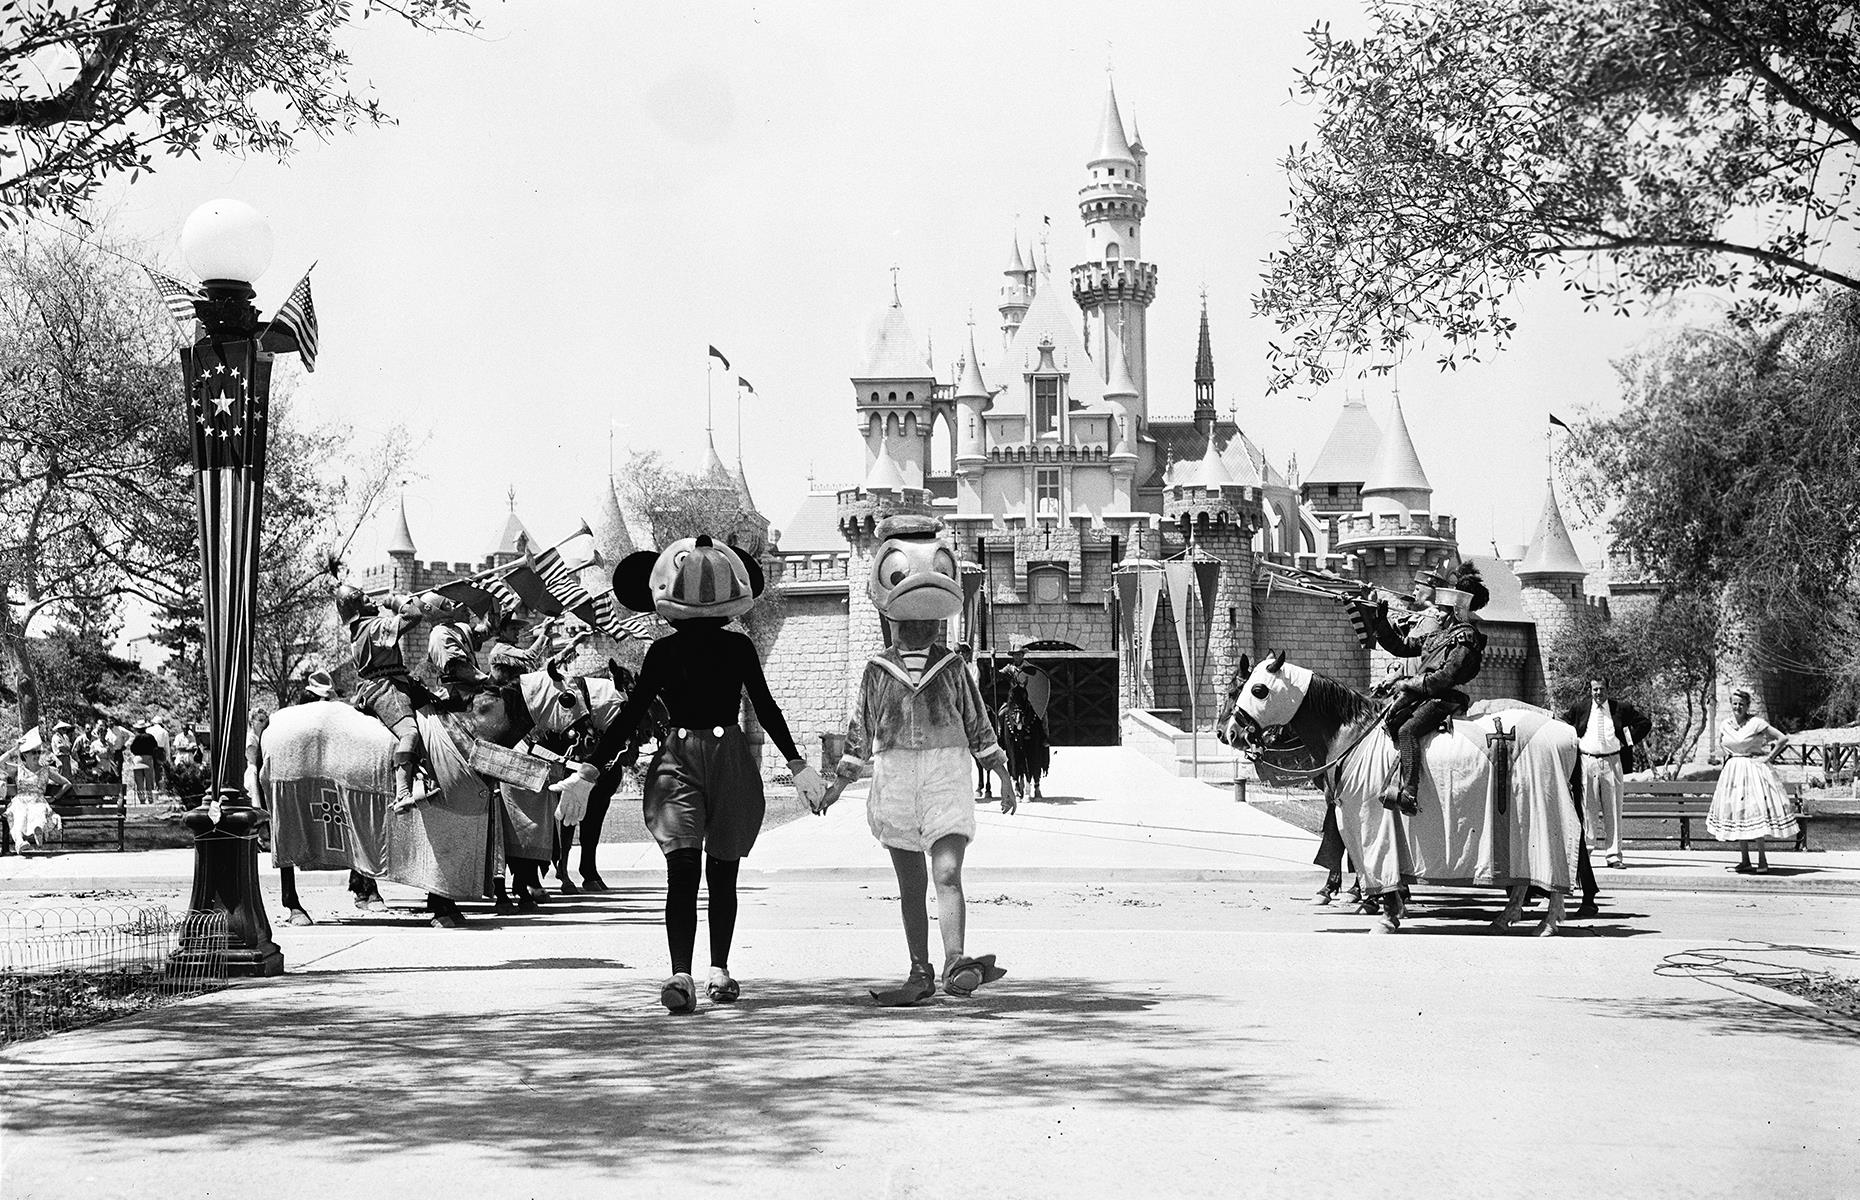 Slide 6 of 38: In renowned Disney fashion, the California park's opening was marked with loud, proud parades, music and appearances from familiar characters. Here Mickey Mouse and Donald Duck march out hand in hand before Sleeping Beauty Castle, as they're serenaded by fanfares from costumed folk on horseback.